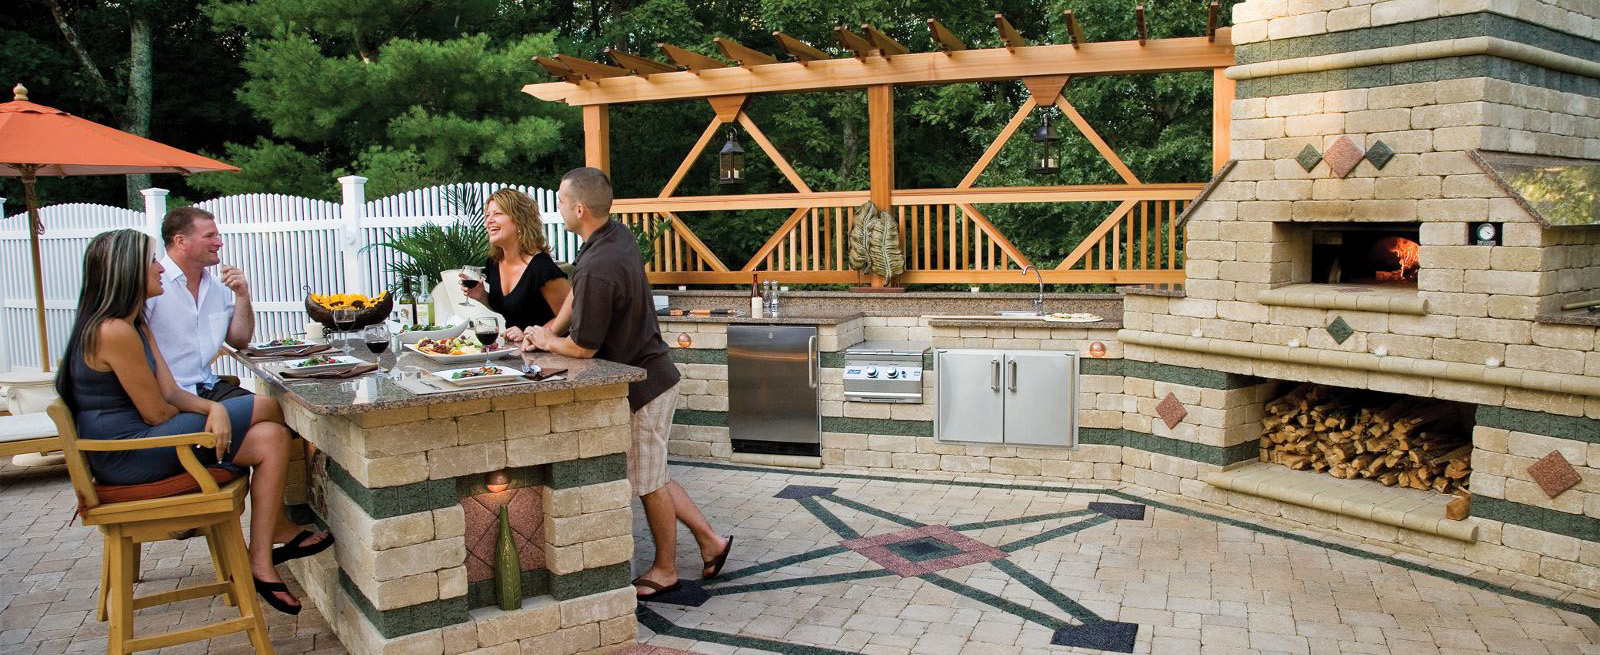 Why Hardscape Outdoor Kitchens May Be Best